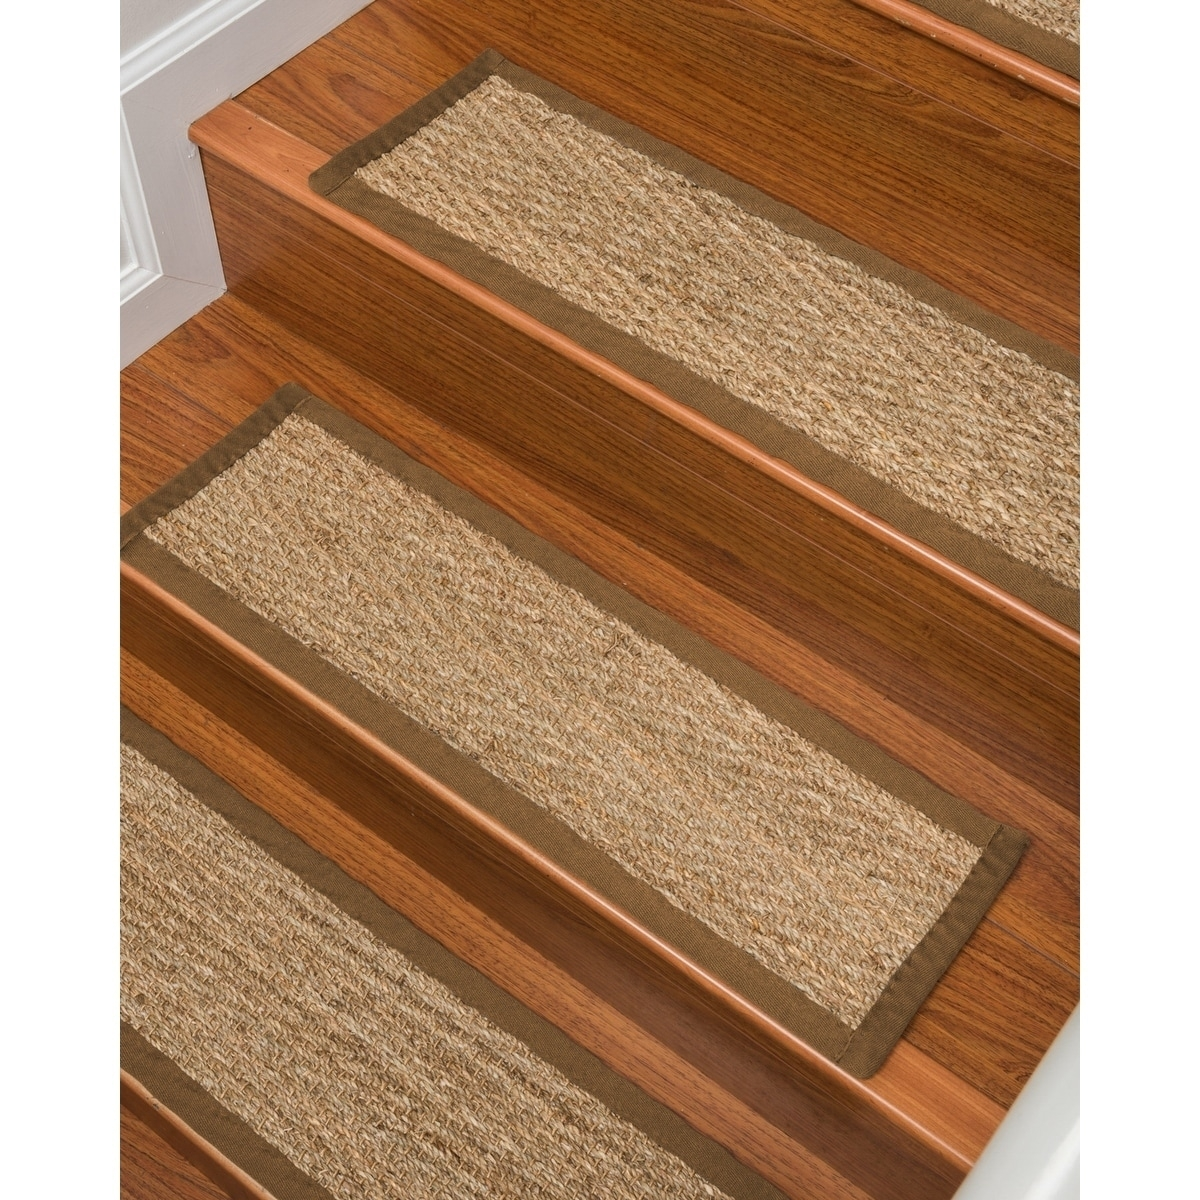 Natural Area Rugs Beach Seagrass Carpet Beige Malt Stair Tread | Seagrass Carpet On Stairs | Gray Wood | Hard Wearing | Grey | Stair Malay Chen Sisal | 80 20 Wool Carpet Stair